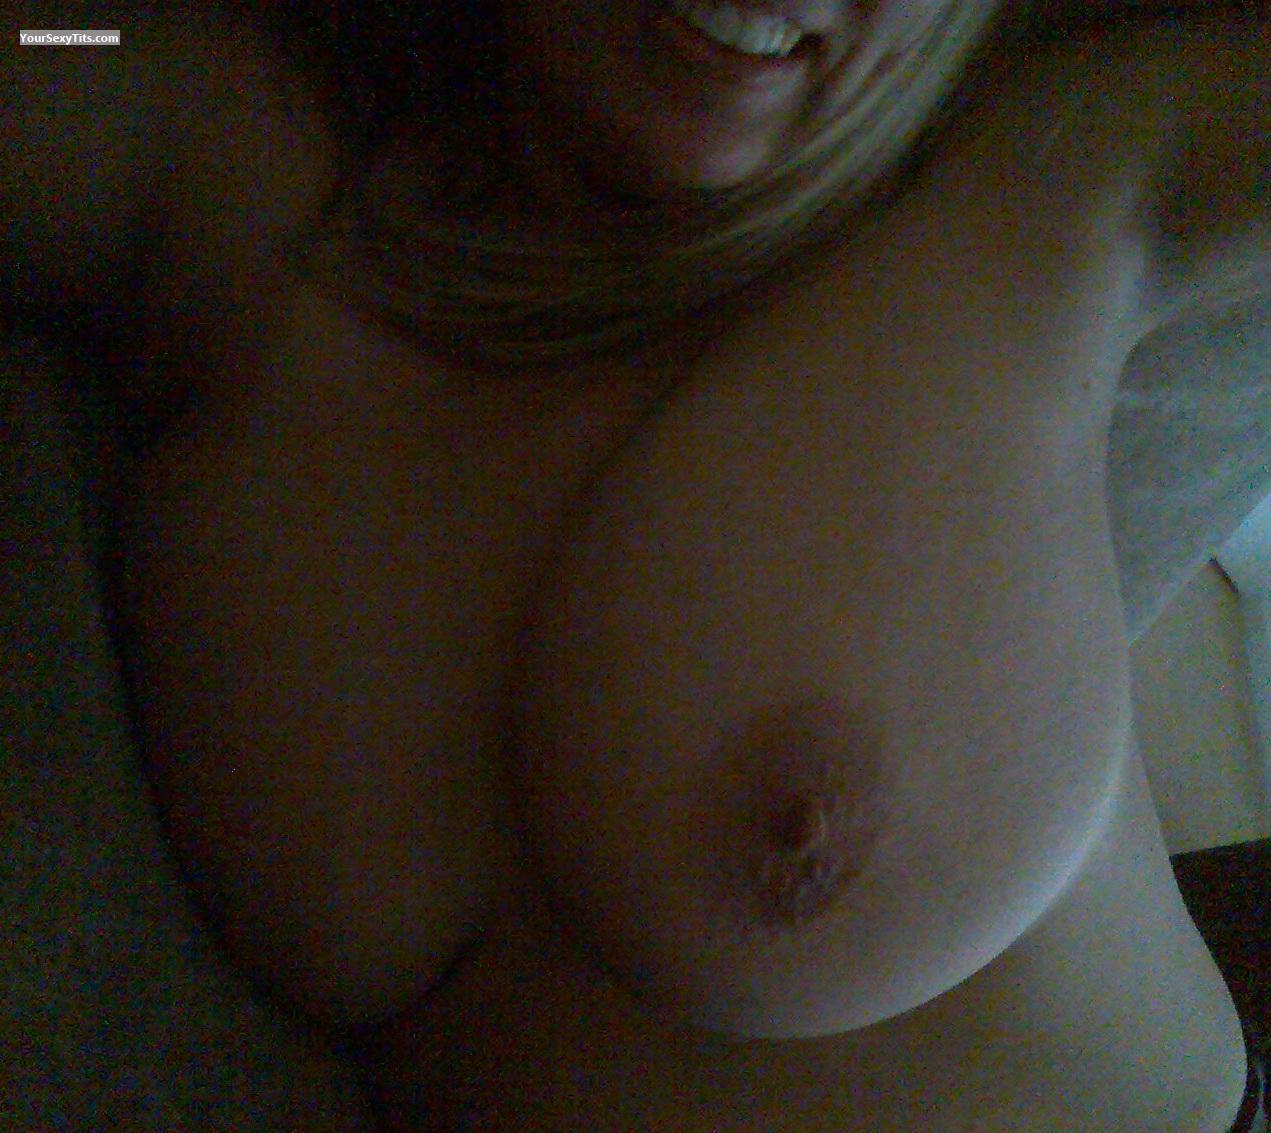 Tit Flash: Extremely Big Tits - 34GG from United Kingdom